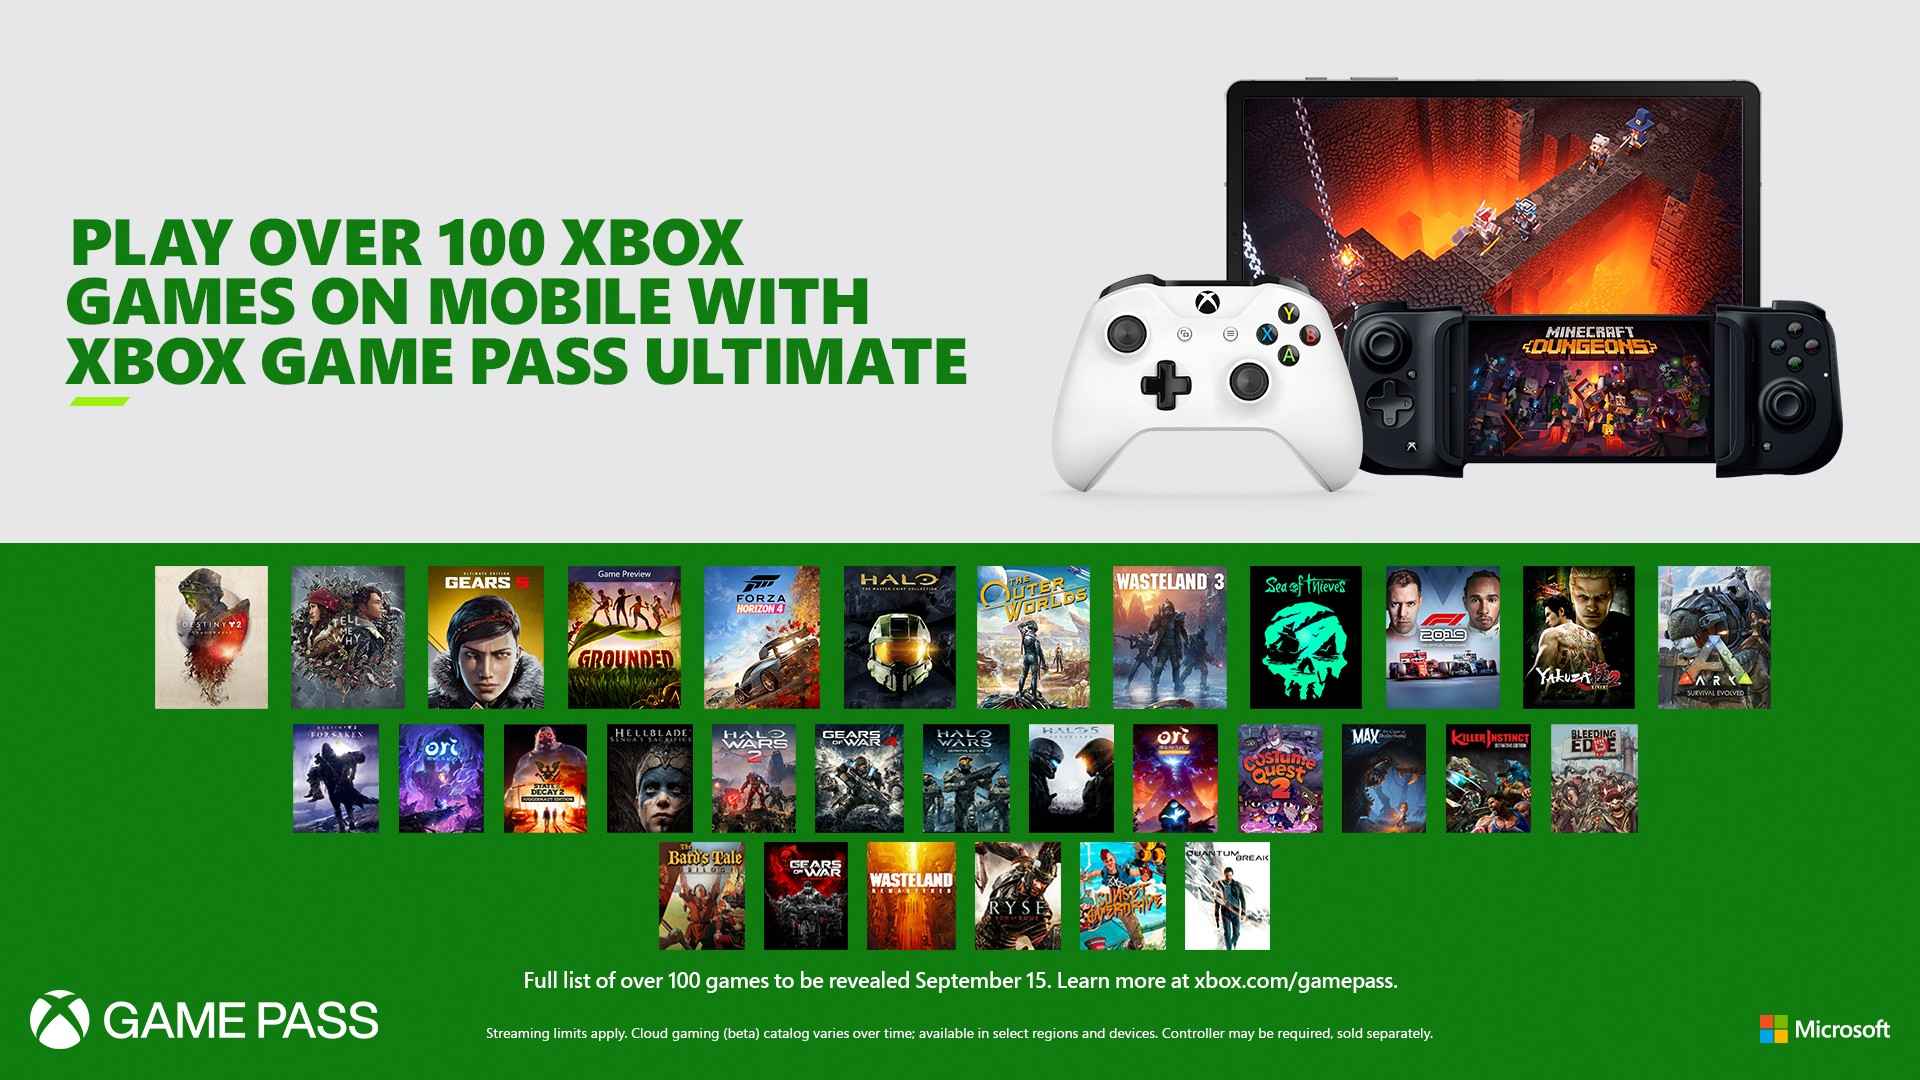 The price increase for Xbox Live Gold members may be the first step toward phasing the membership tier out altogether, in favour of Microsoft's coveted Game Pass.